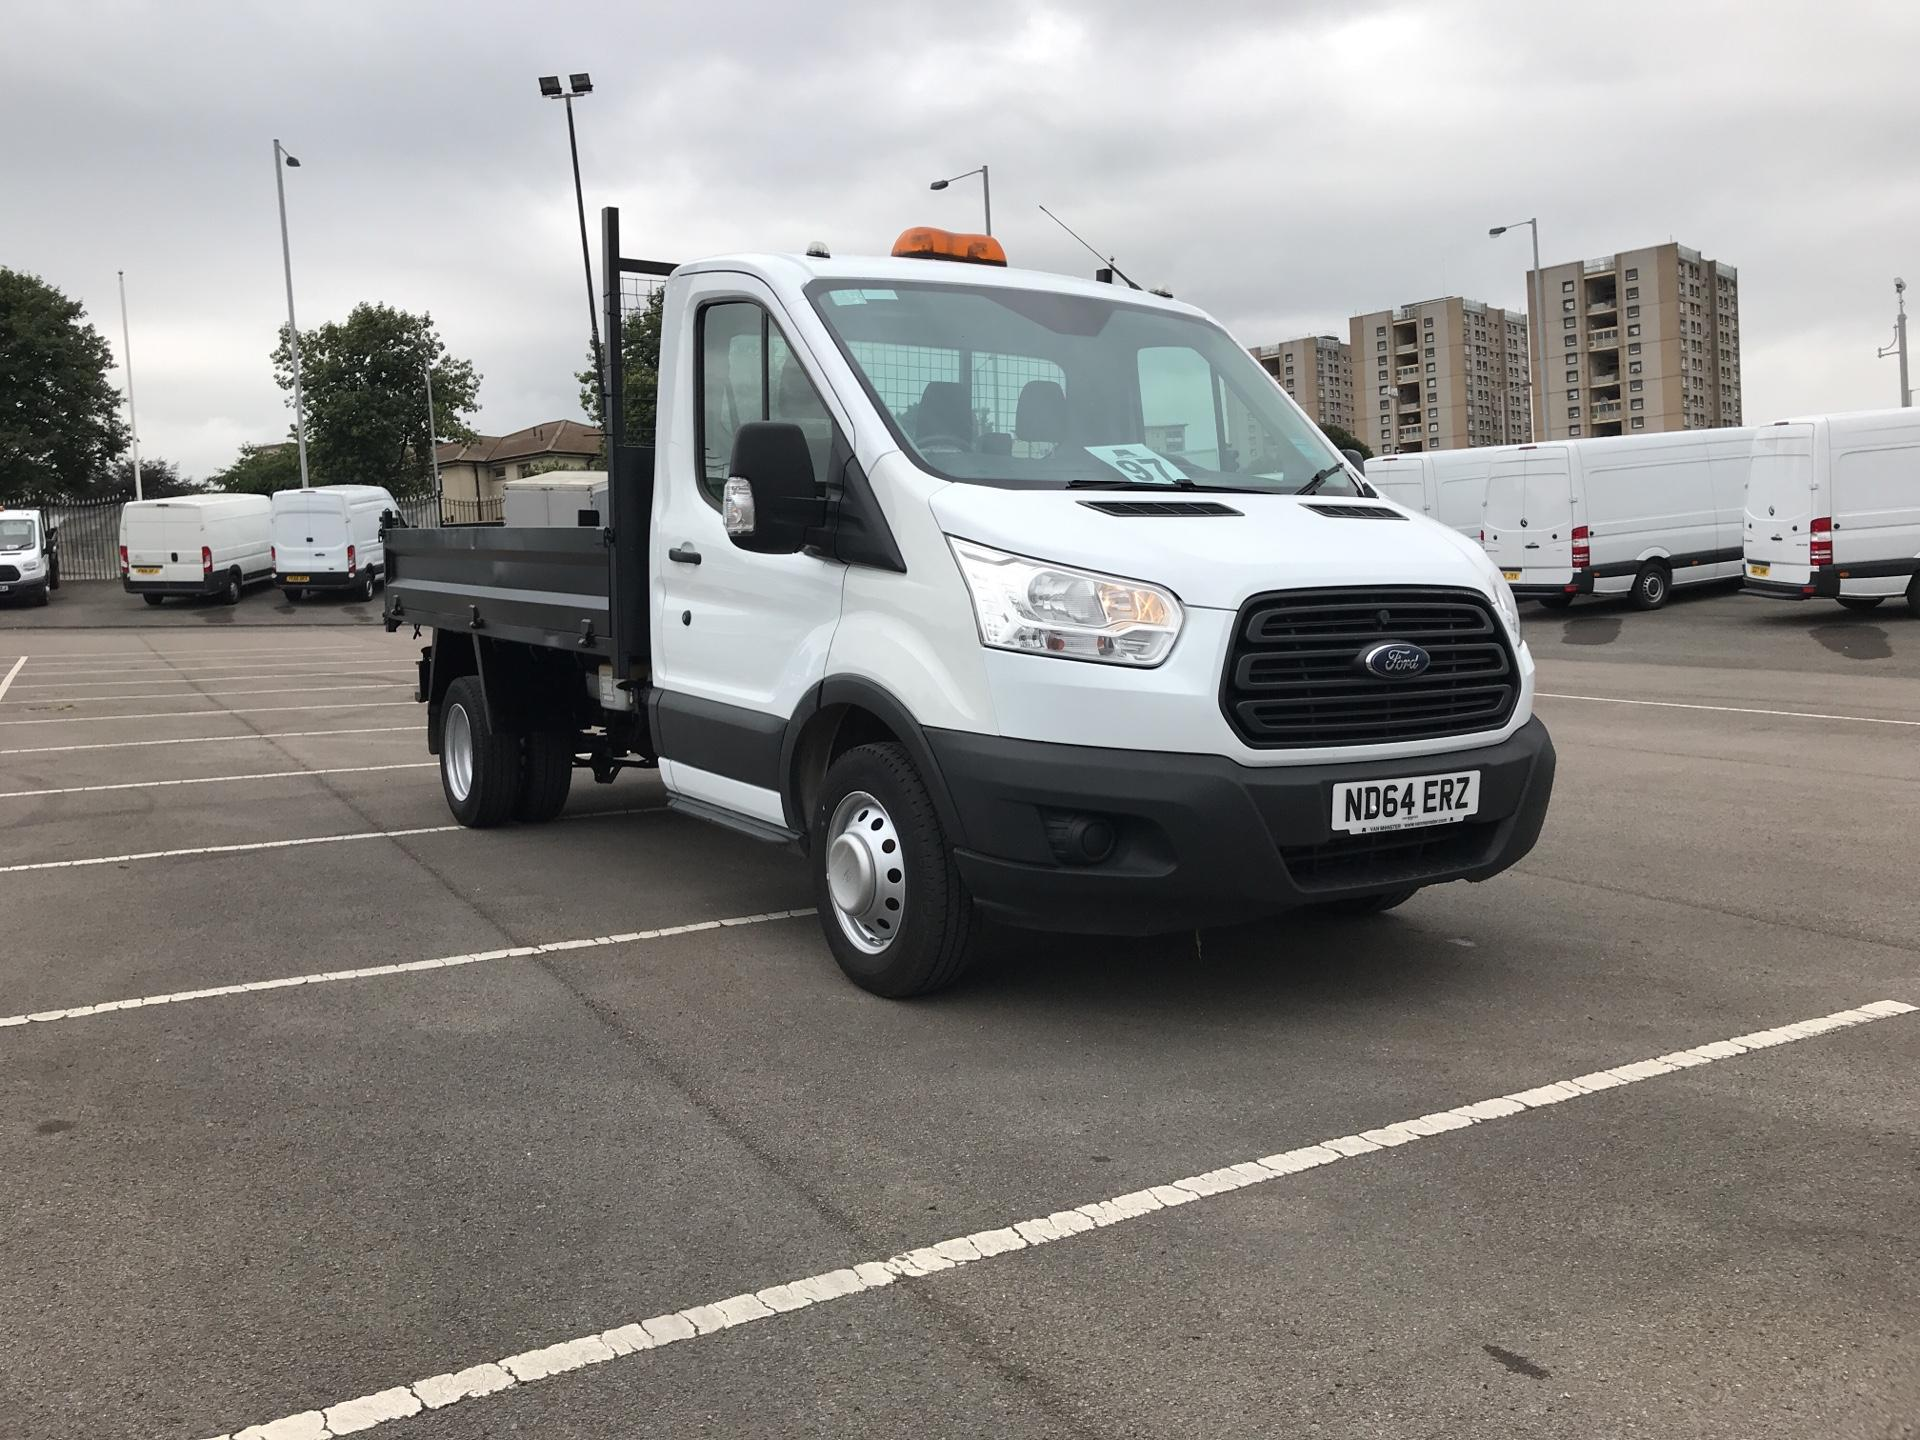 2015 Ford Transit 2.2 Tdci 125Ps SINGLE CAB TIPPER EURO 5 (ND64ERZ)